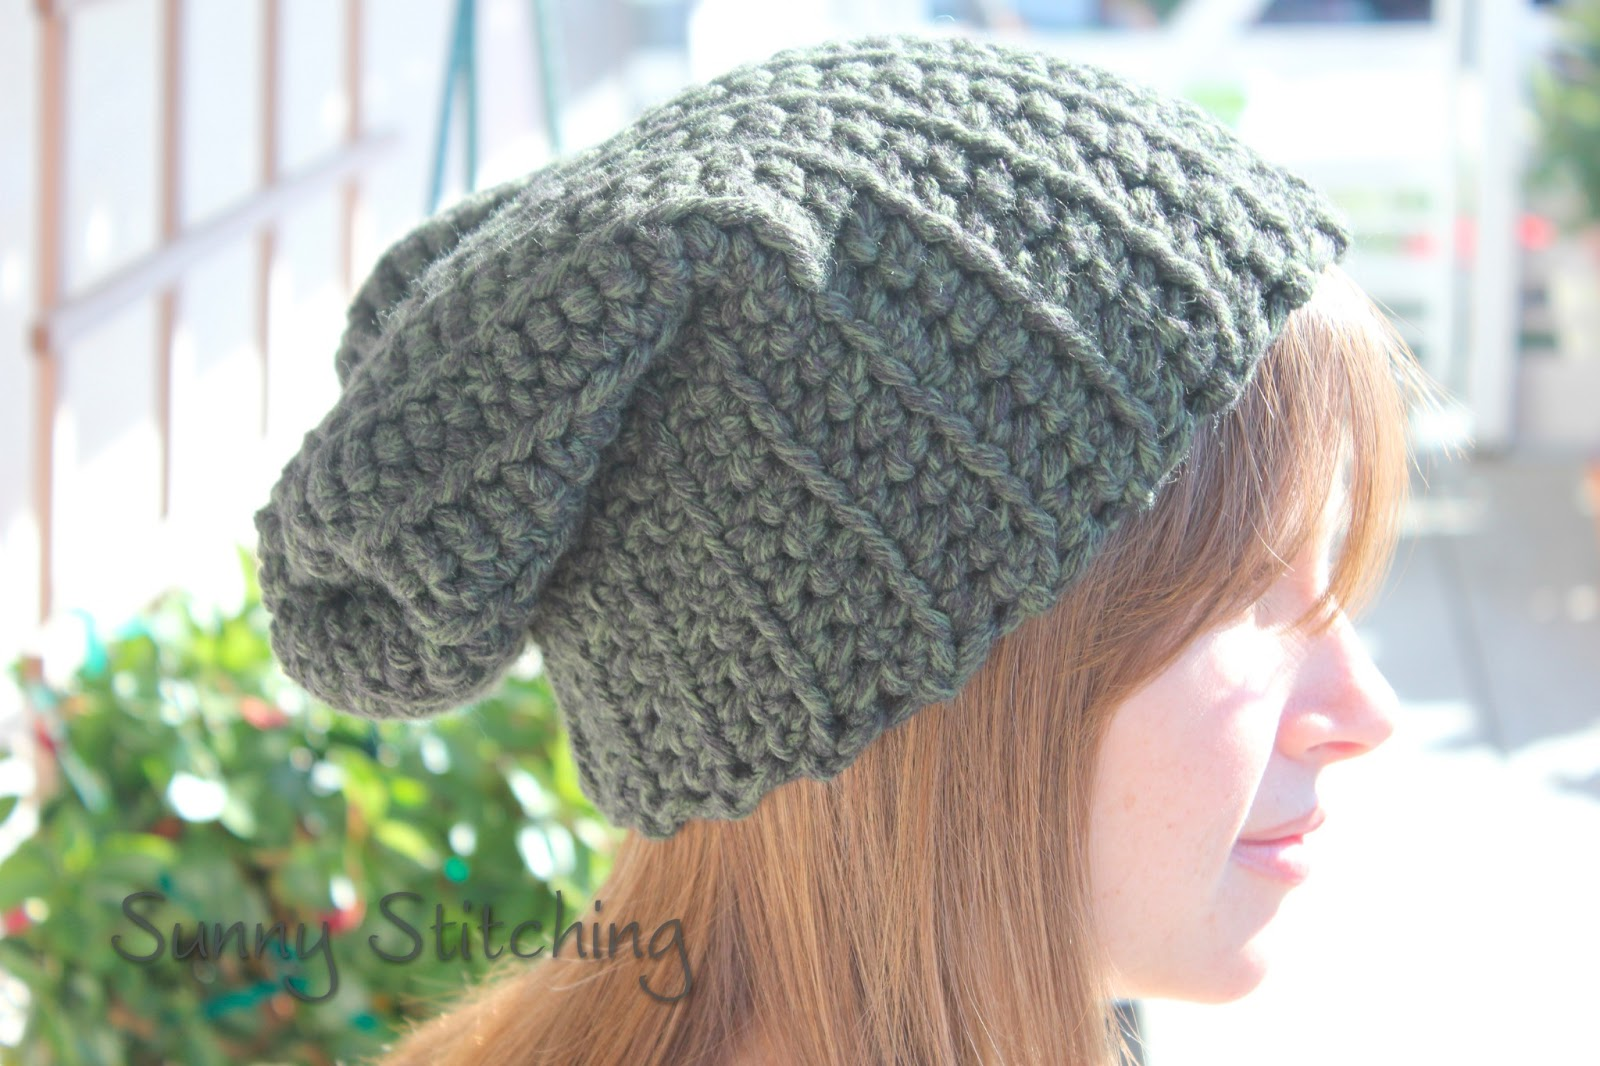 Free Patterns Crochet Beanies : Sunny Stitching: Slouchy Hat Crochet Pattern